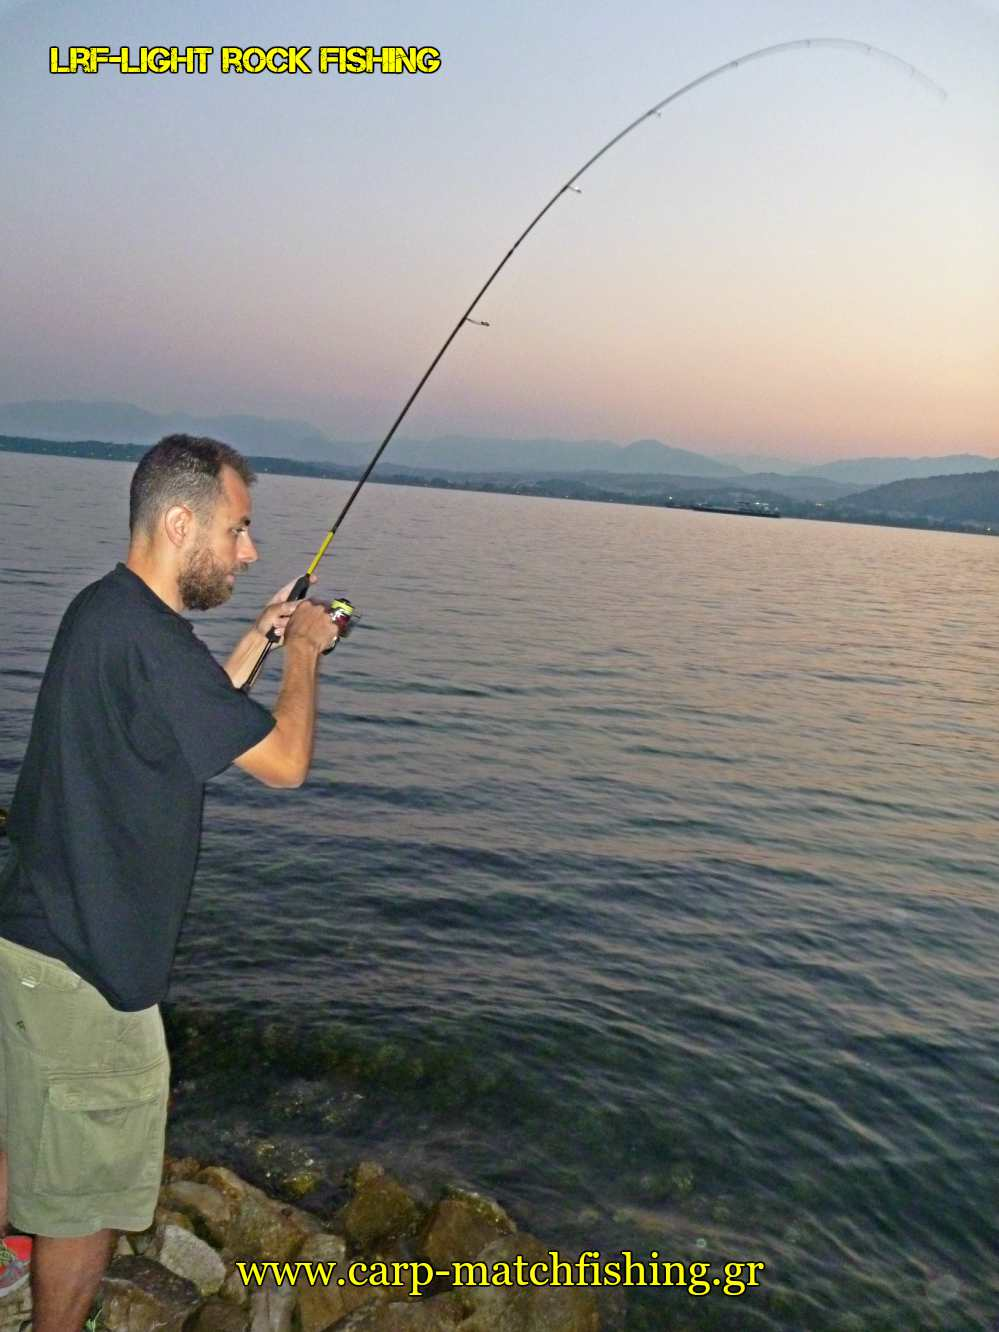 light-rock-fishing-lrf-rod-curve-tsipoures-carpmatchfishing